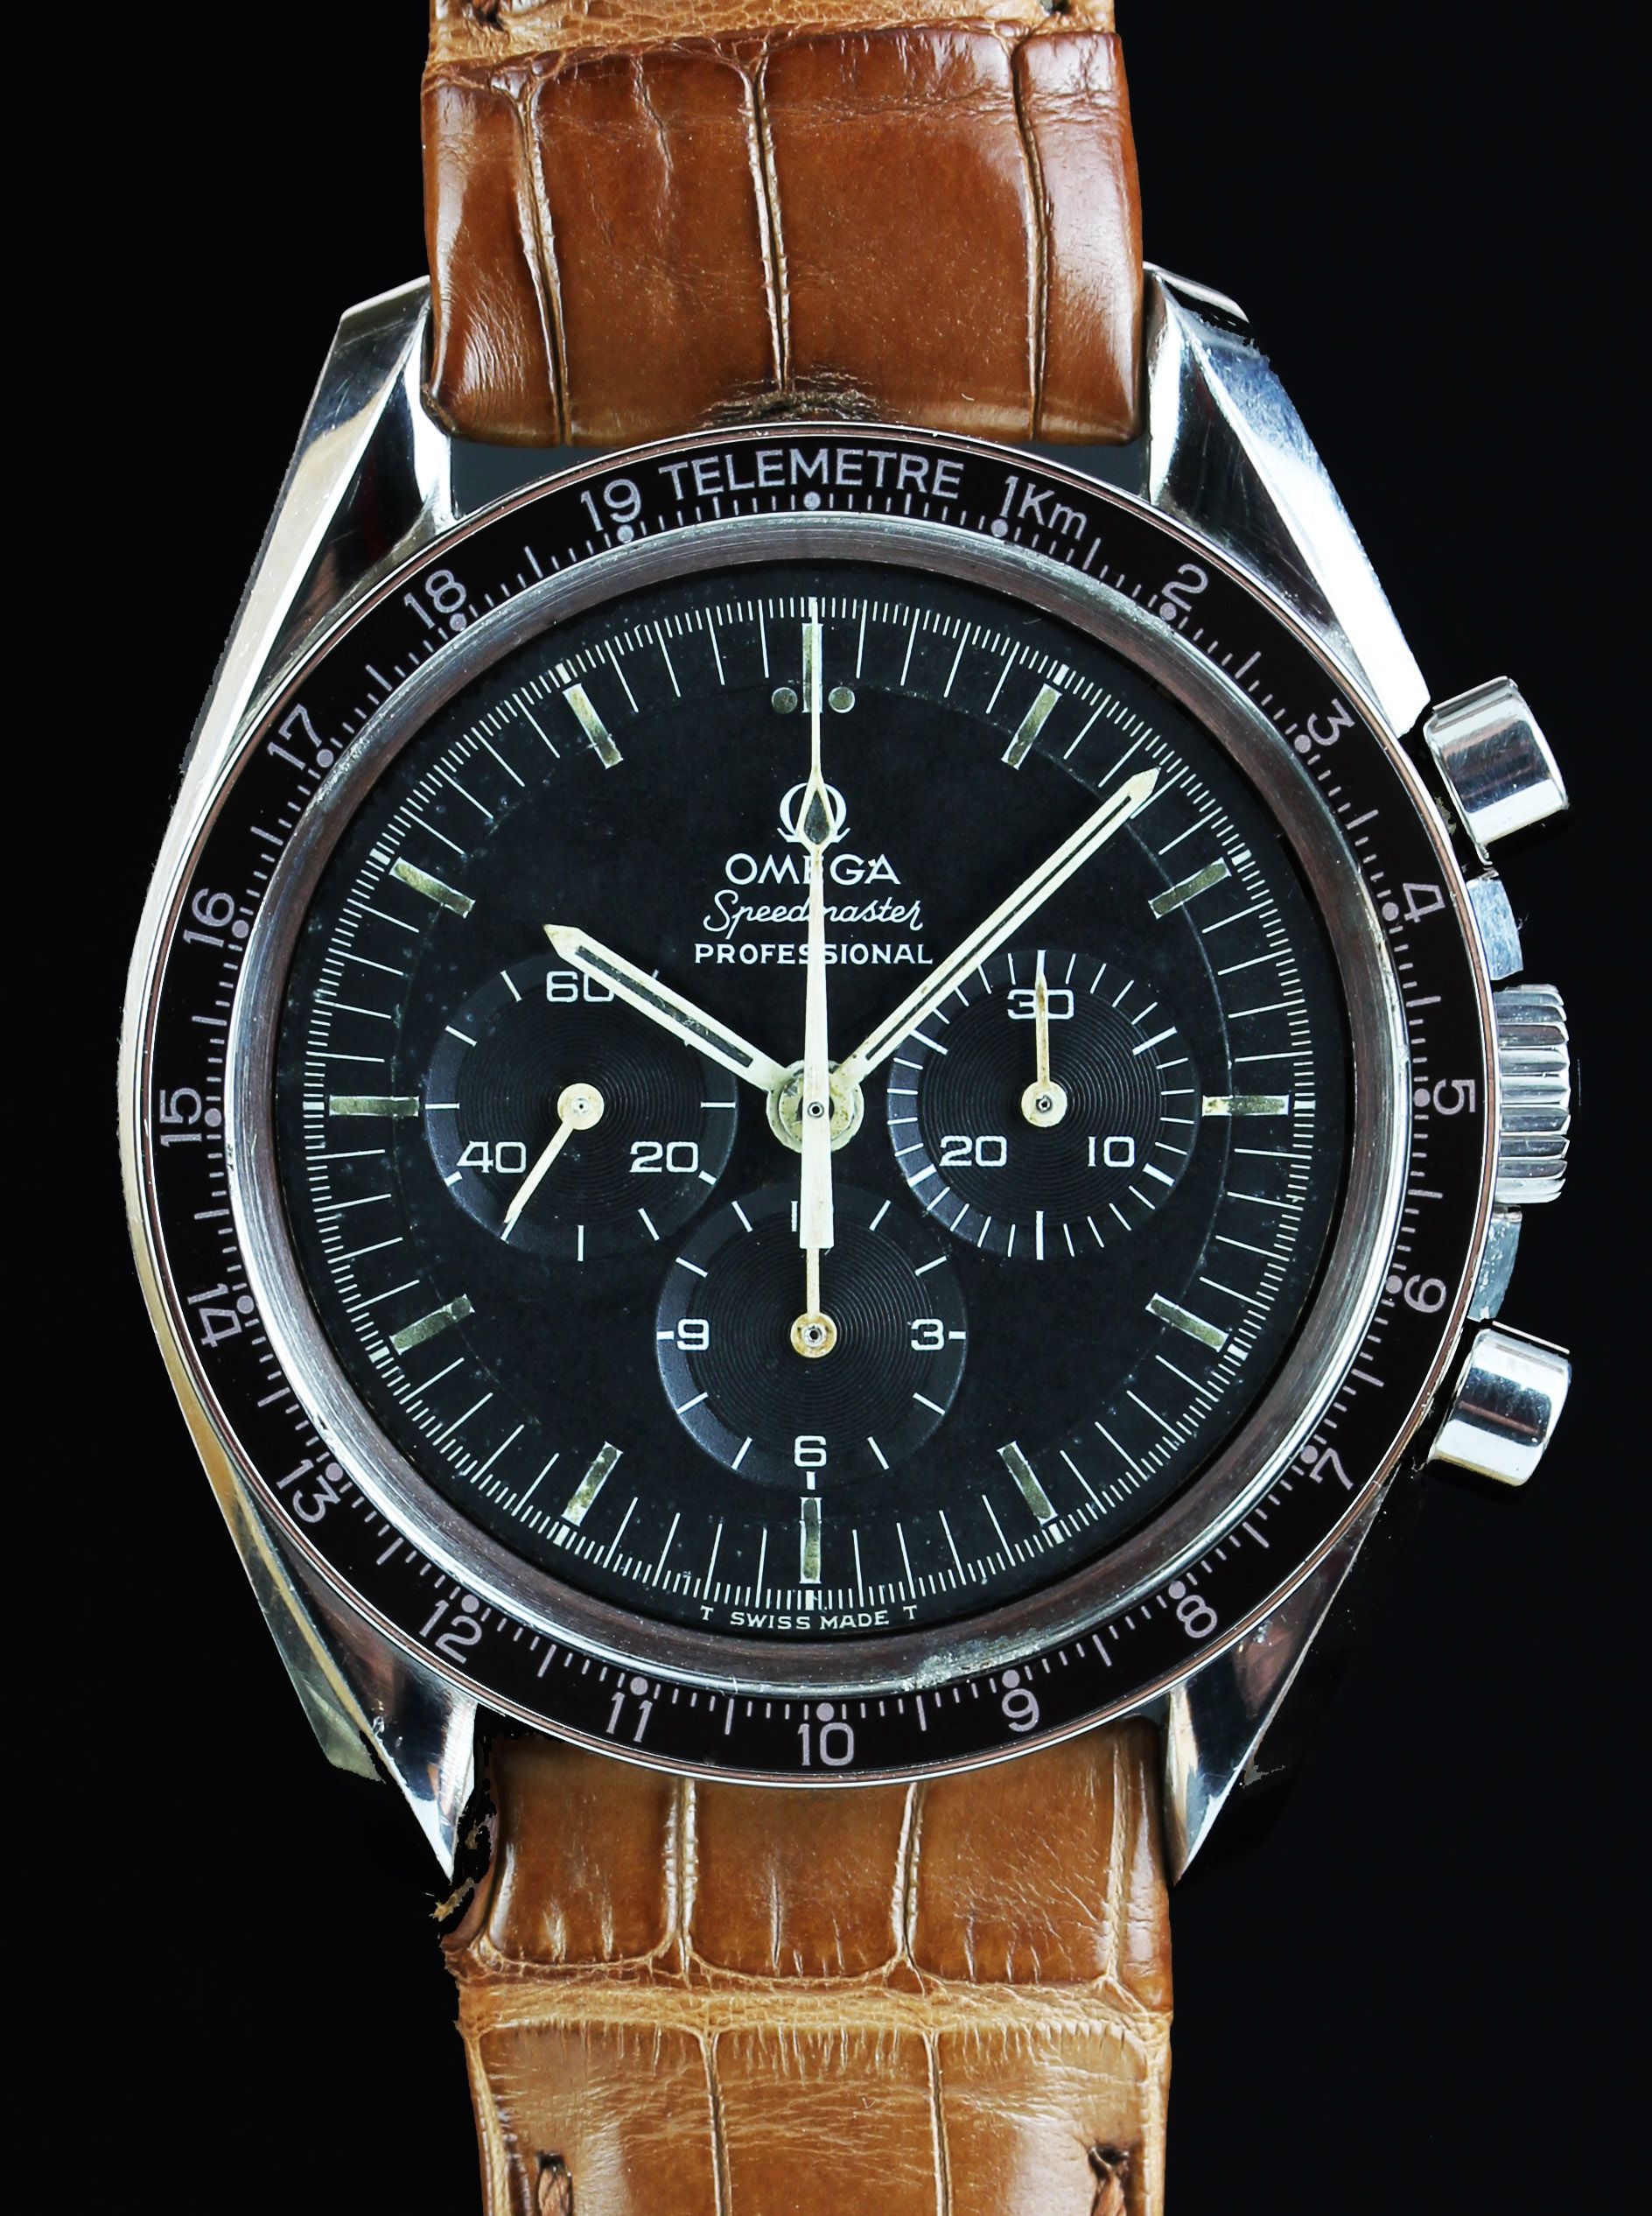 Omega pre-moon Speedmaster from 1969 with telemetre scale